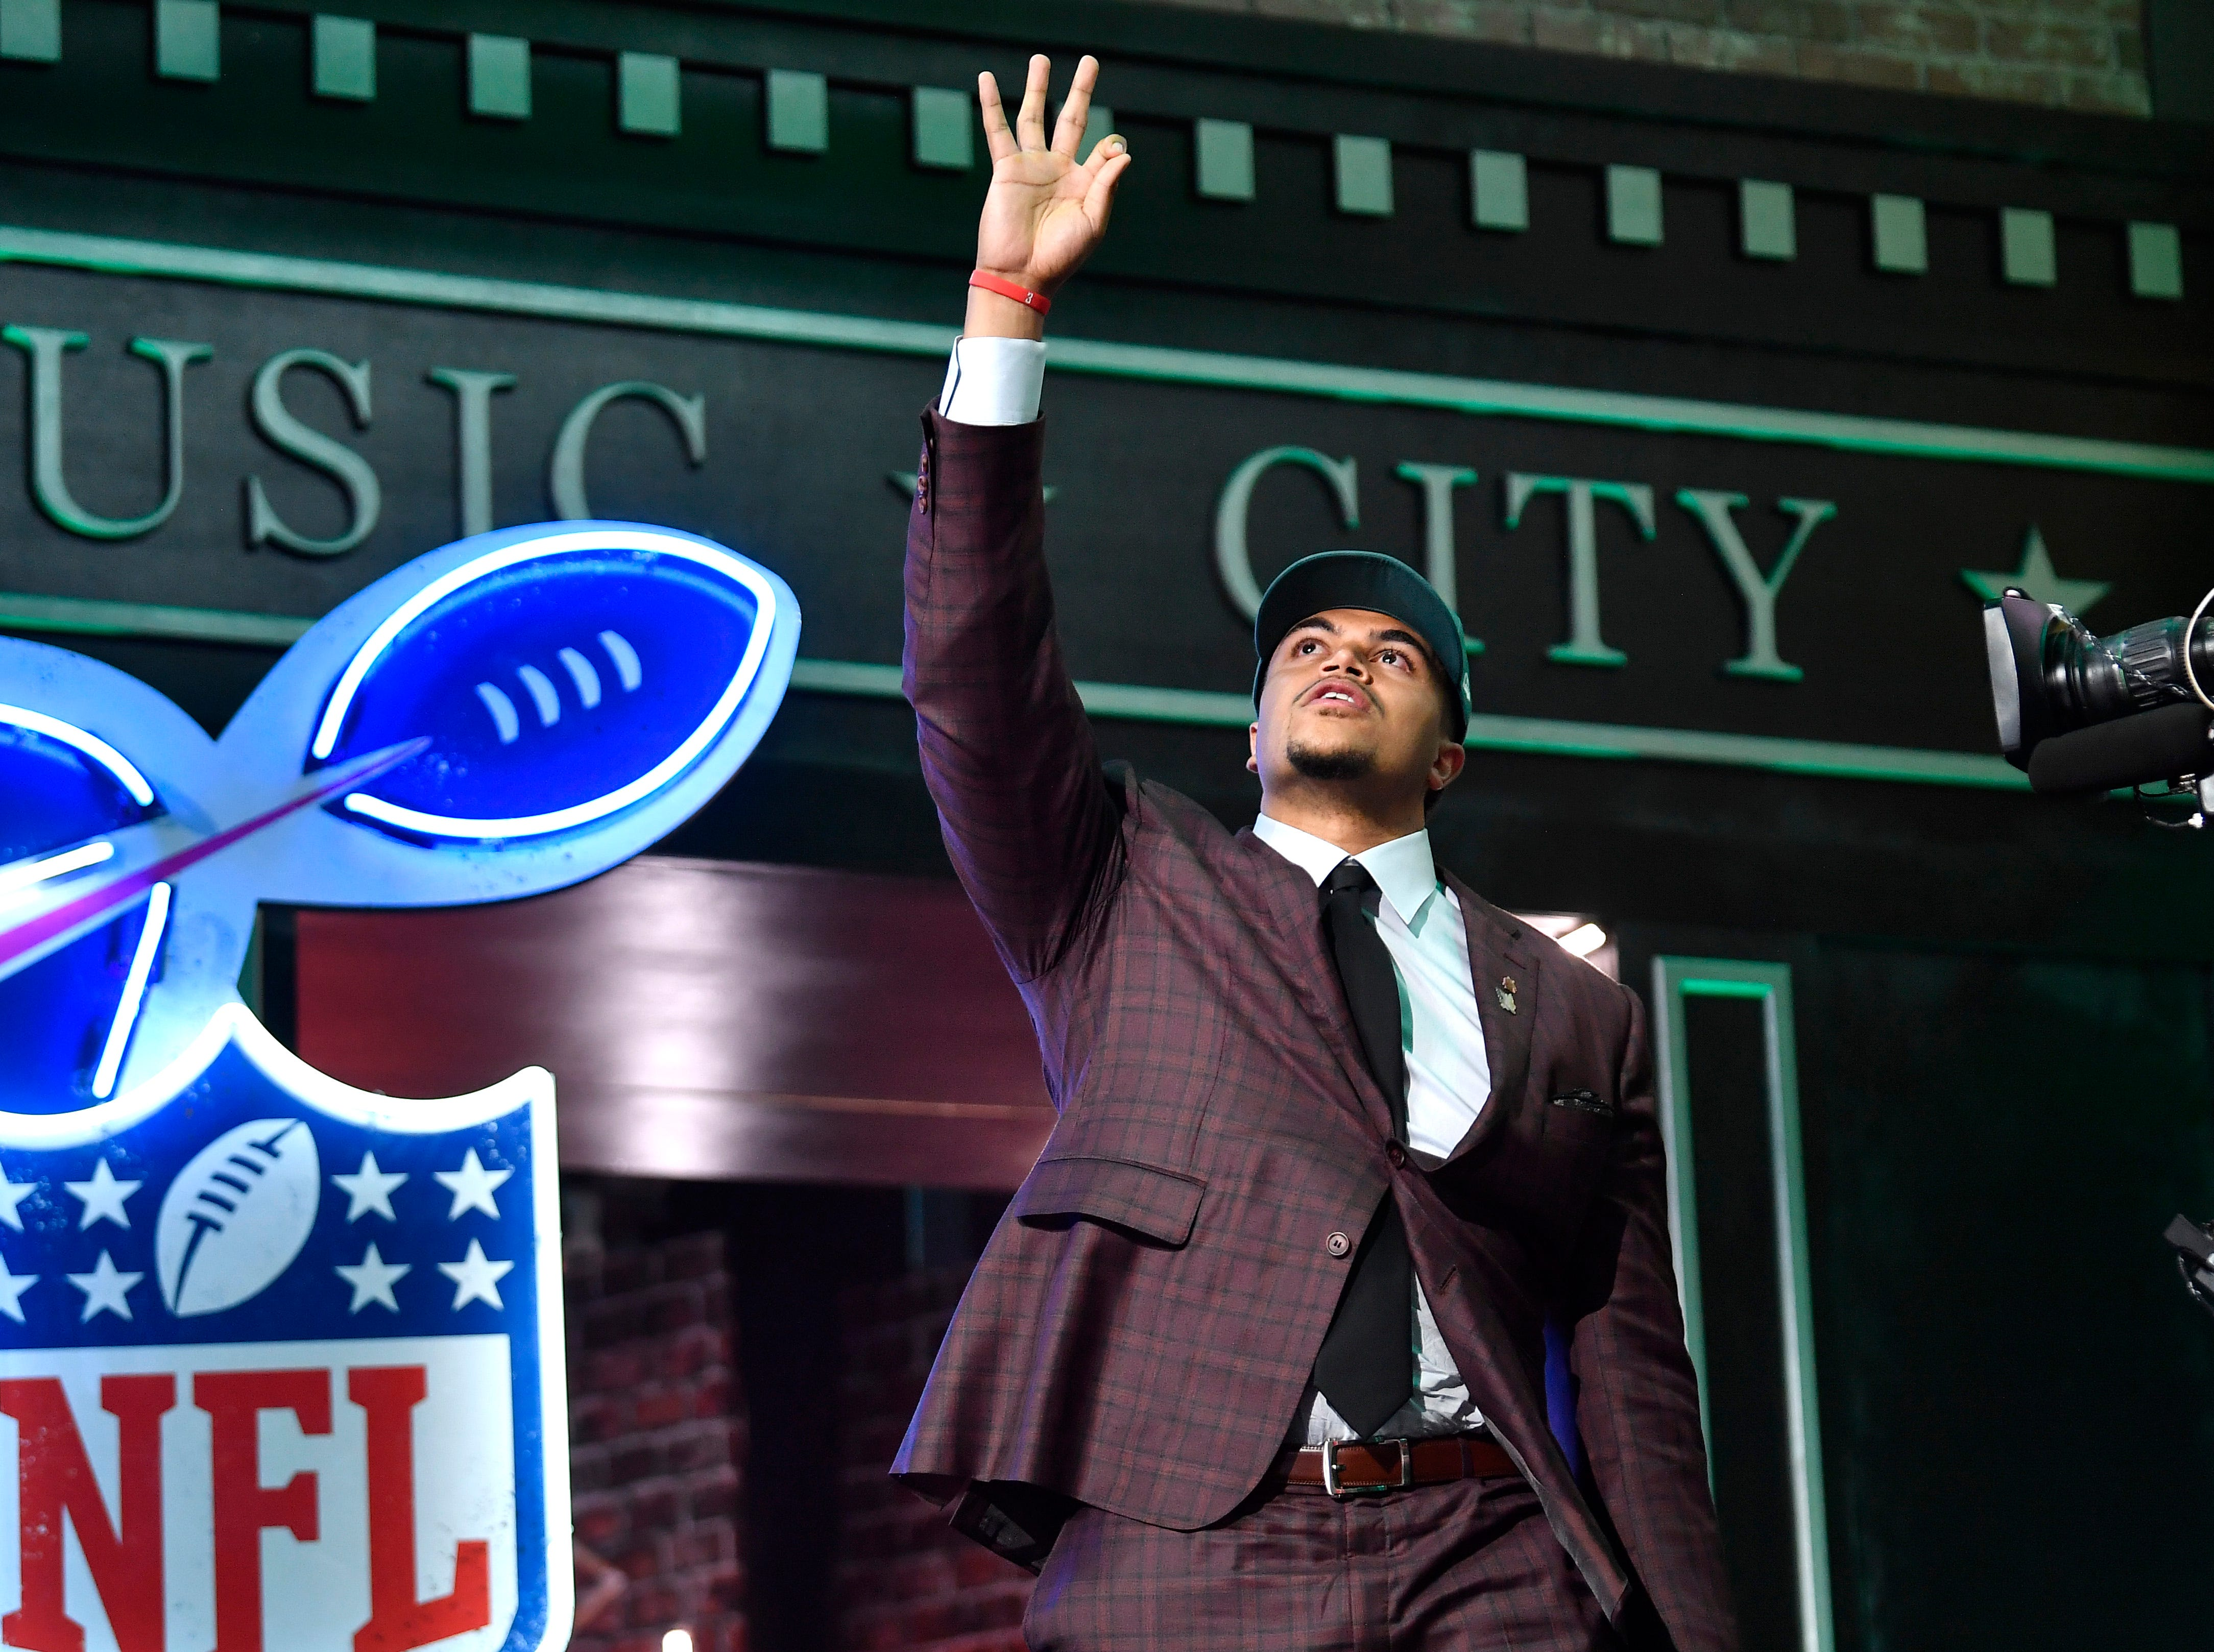 Eagles pick Andre Dillard walks to the stage during the first round of the NFL Draft Thursday, April 25, 2019, in Nashville, Tenn.